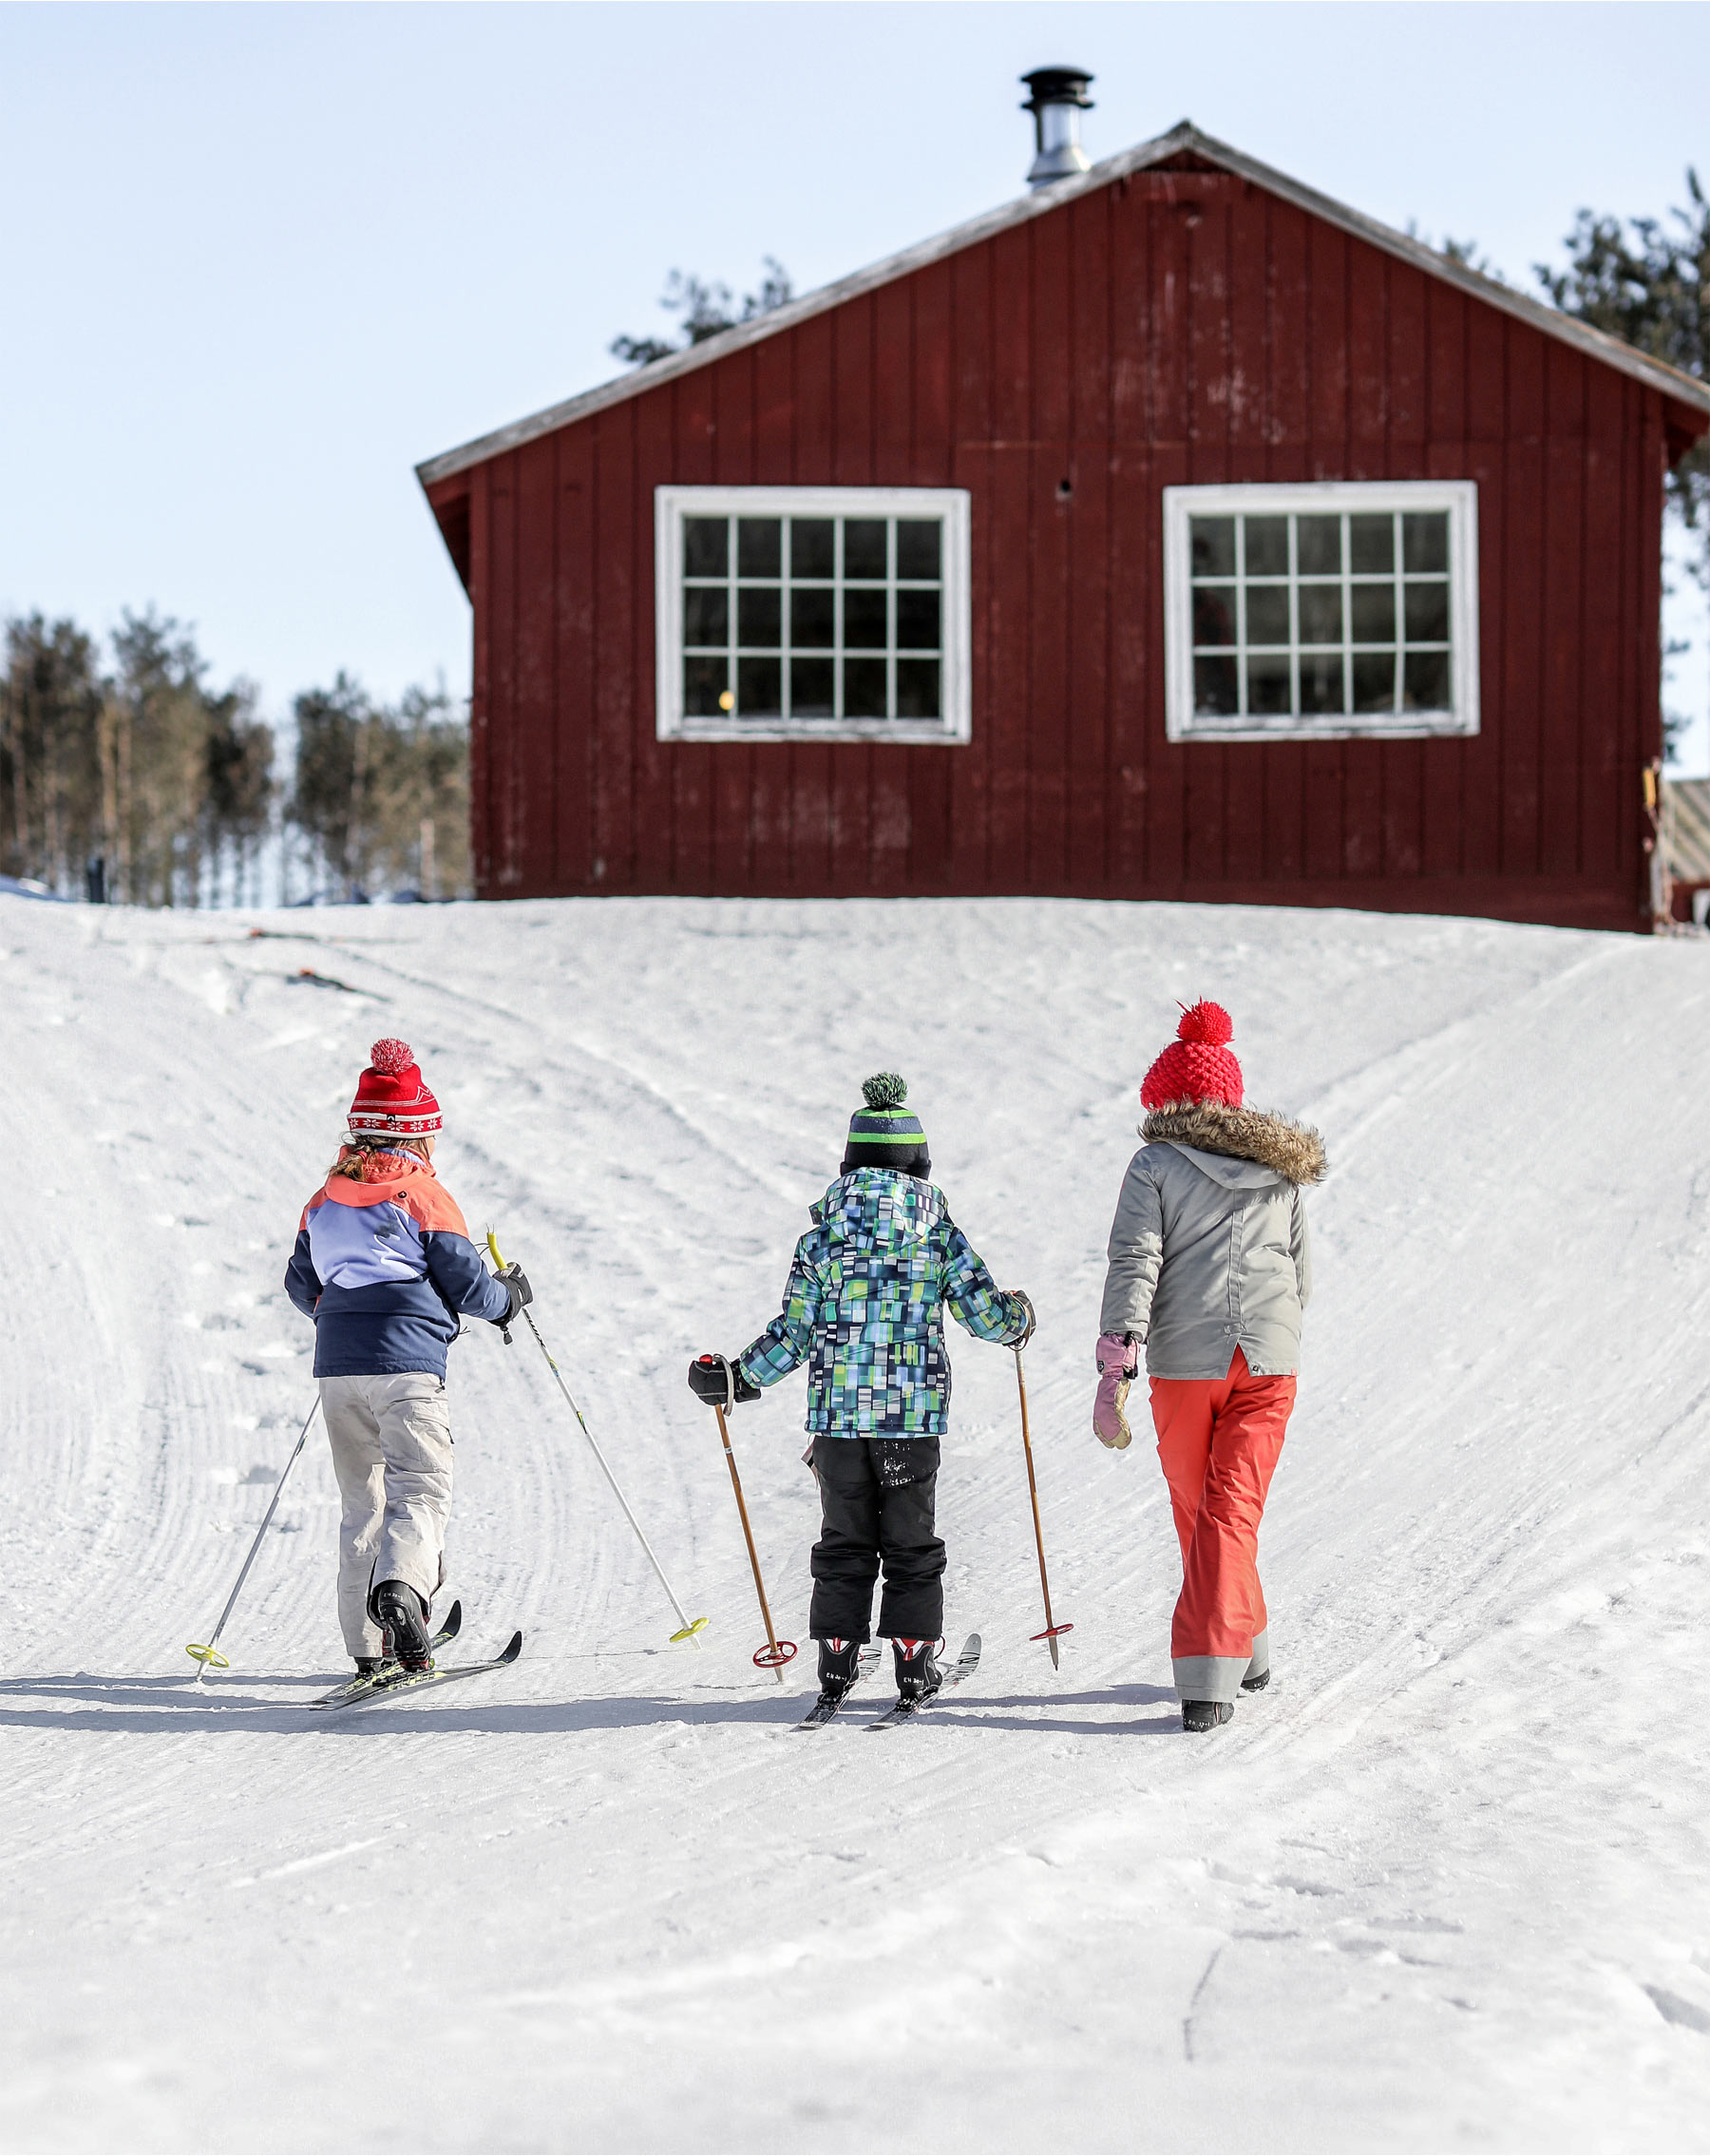 17-Stowe-Vermont-by-Andrew-Vick-Photography-Edson-Hill-Winter-Lodge-Cross-Country-Skiing.jpg